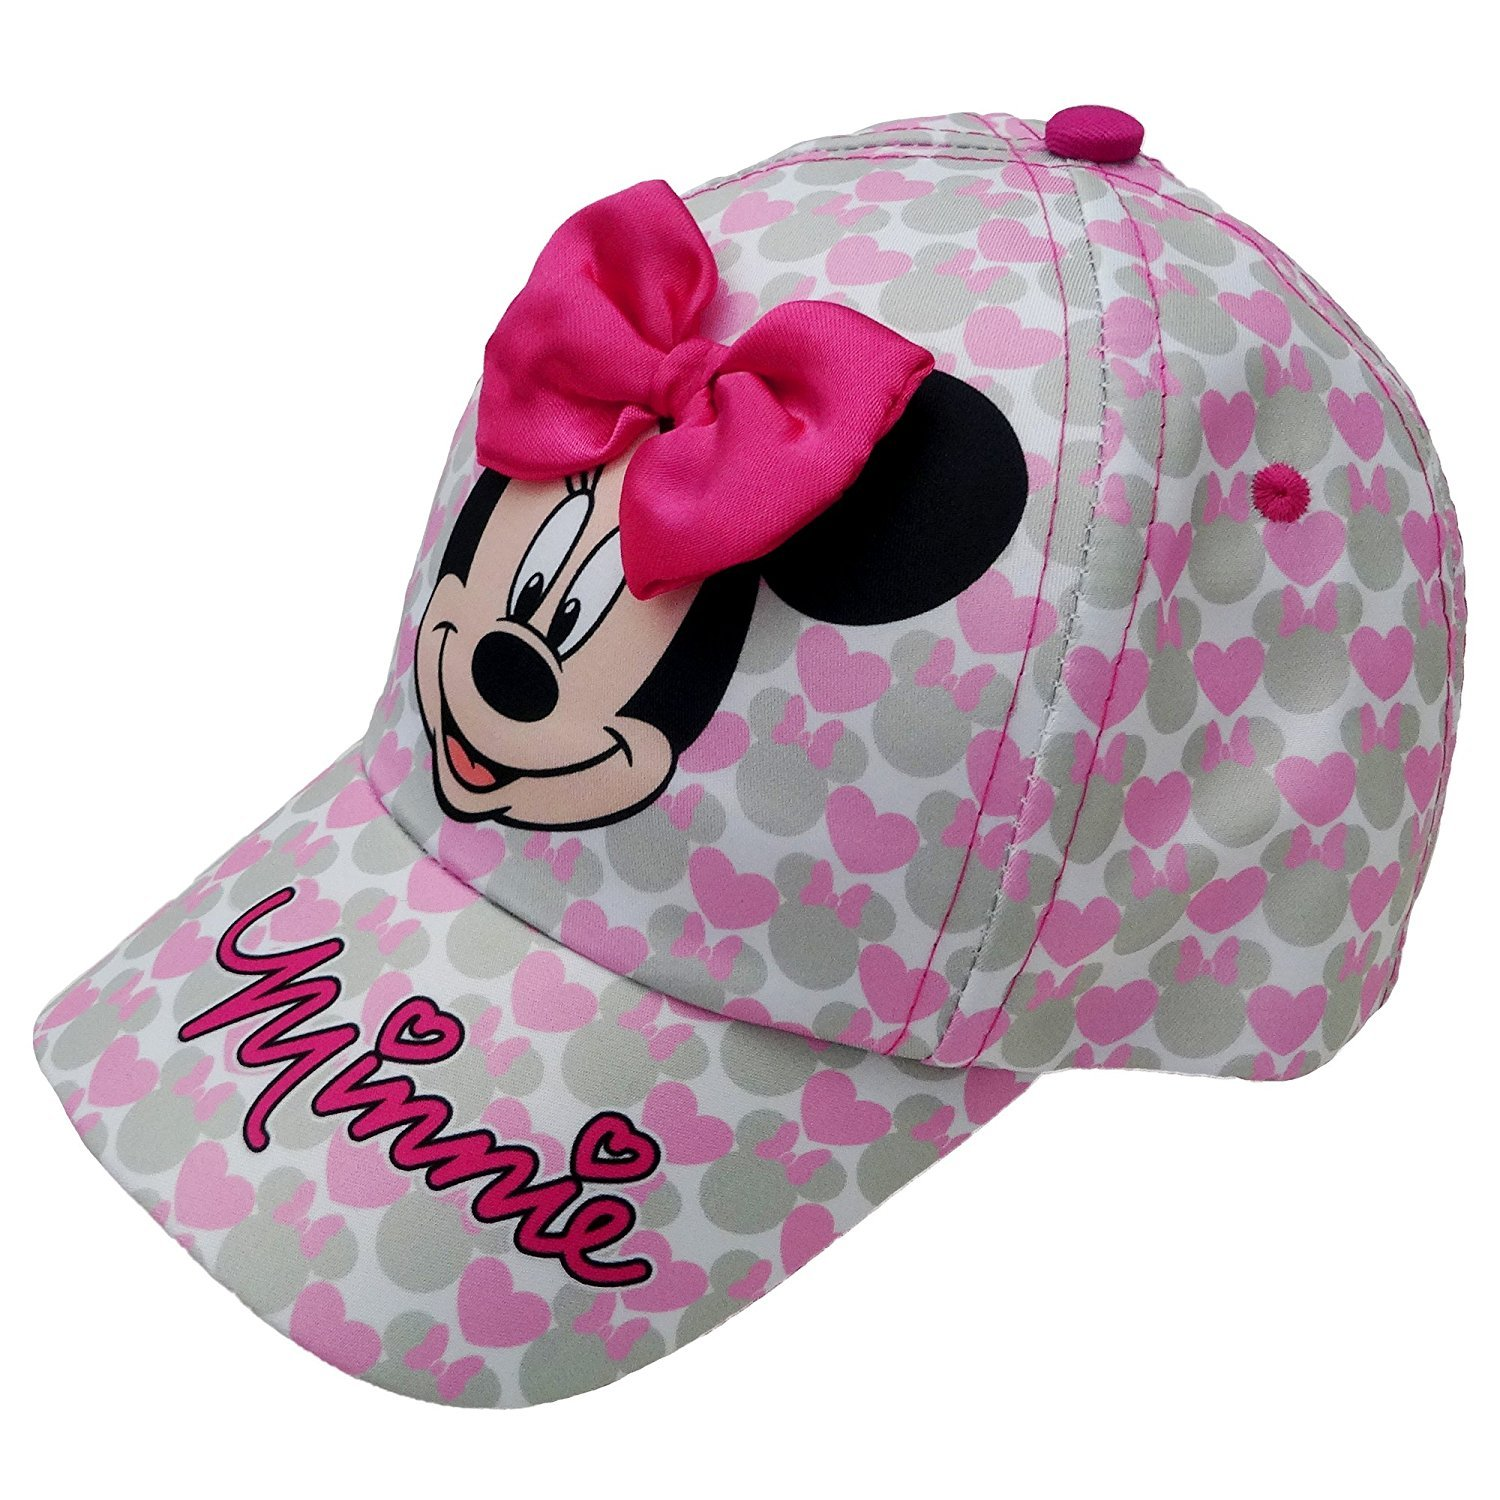 b62e75e07 Buy Minnie Mouse Toddler Baseball Cap Hat in Cheap Price on Alibaba.com